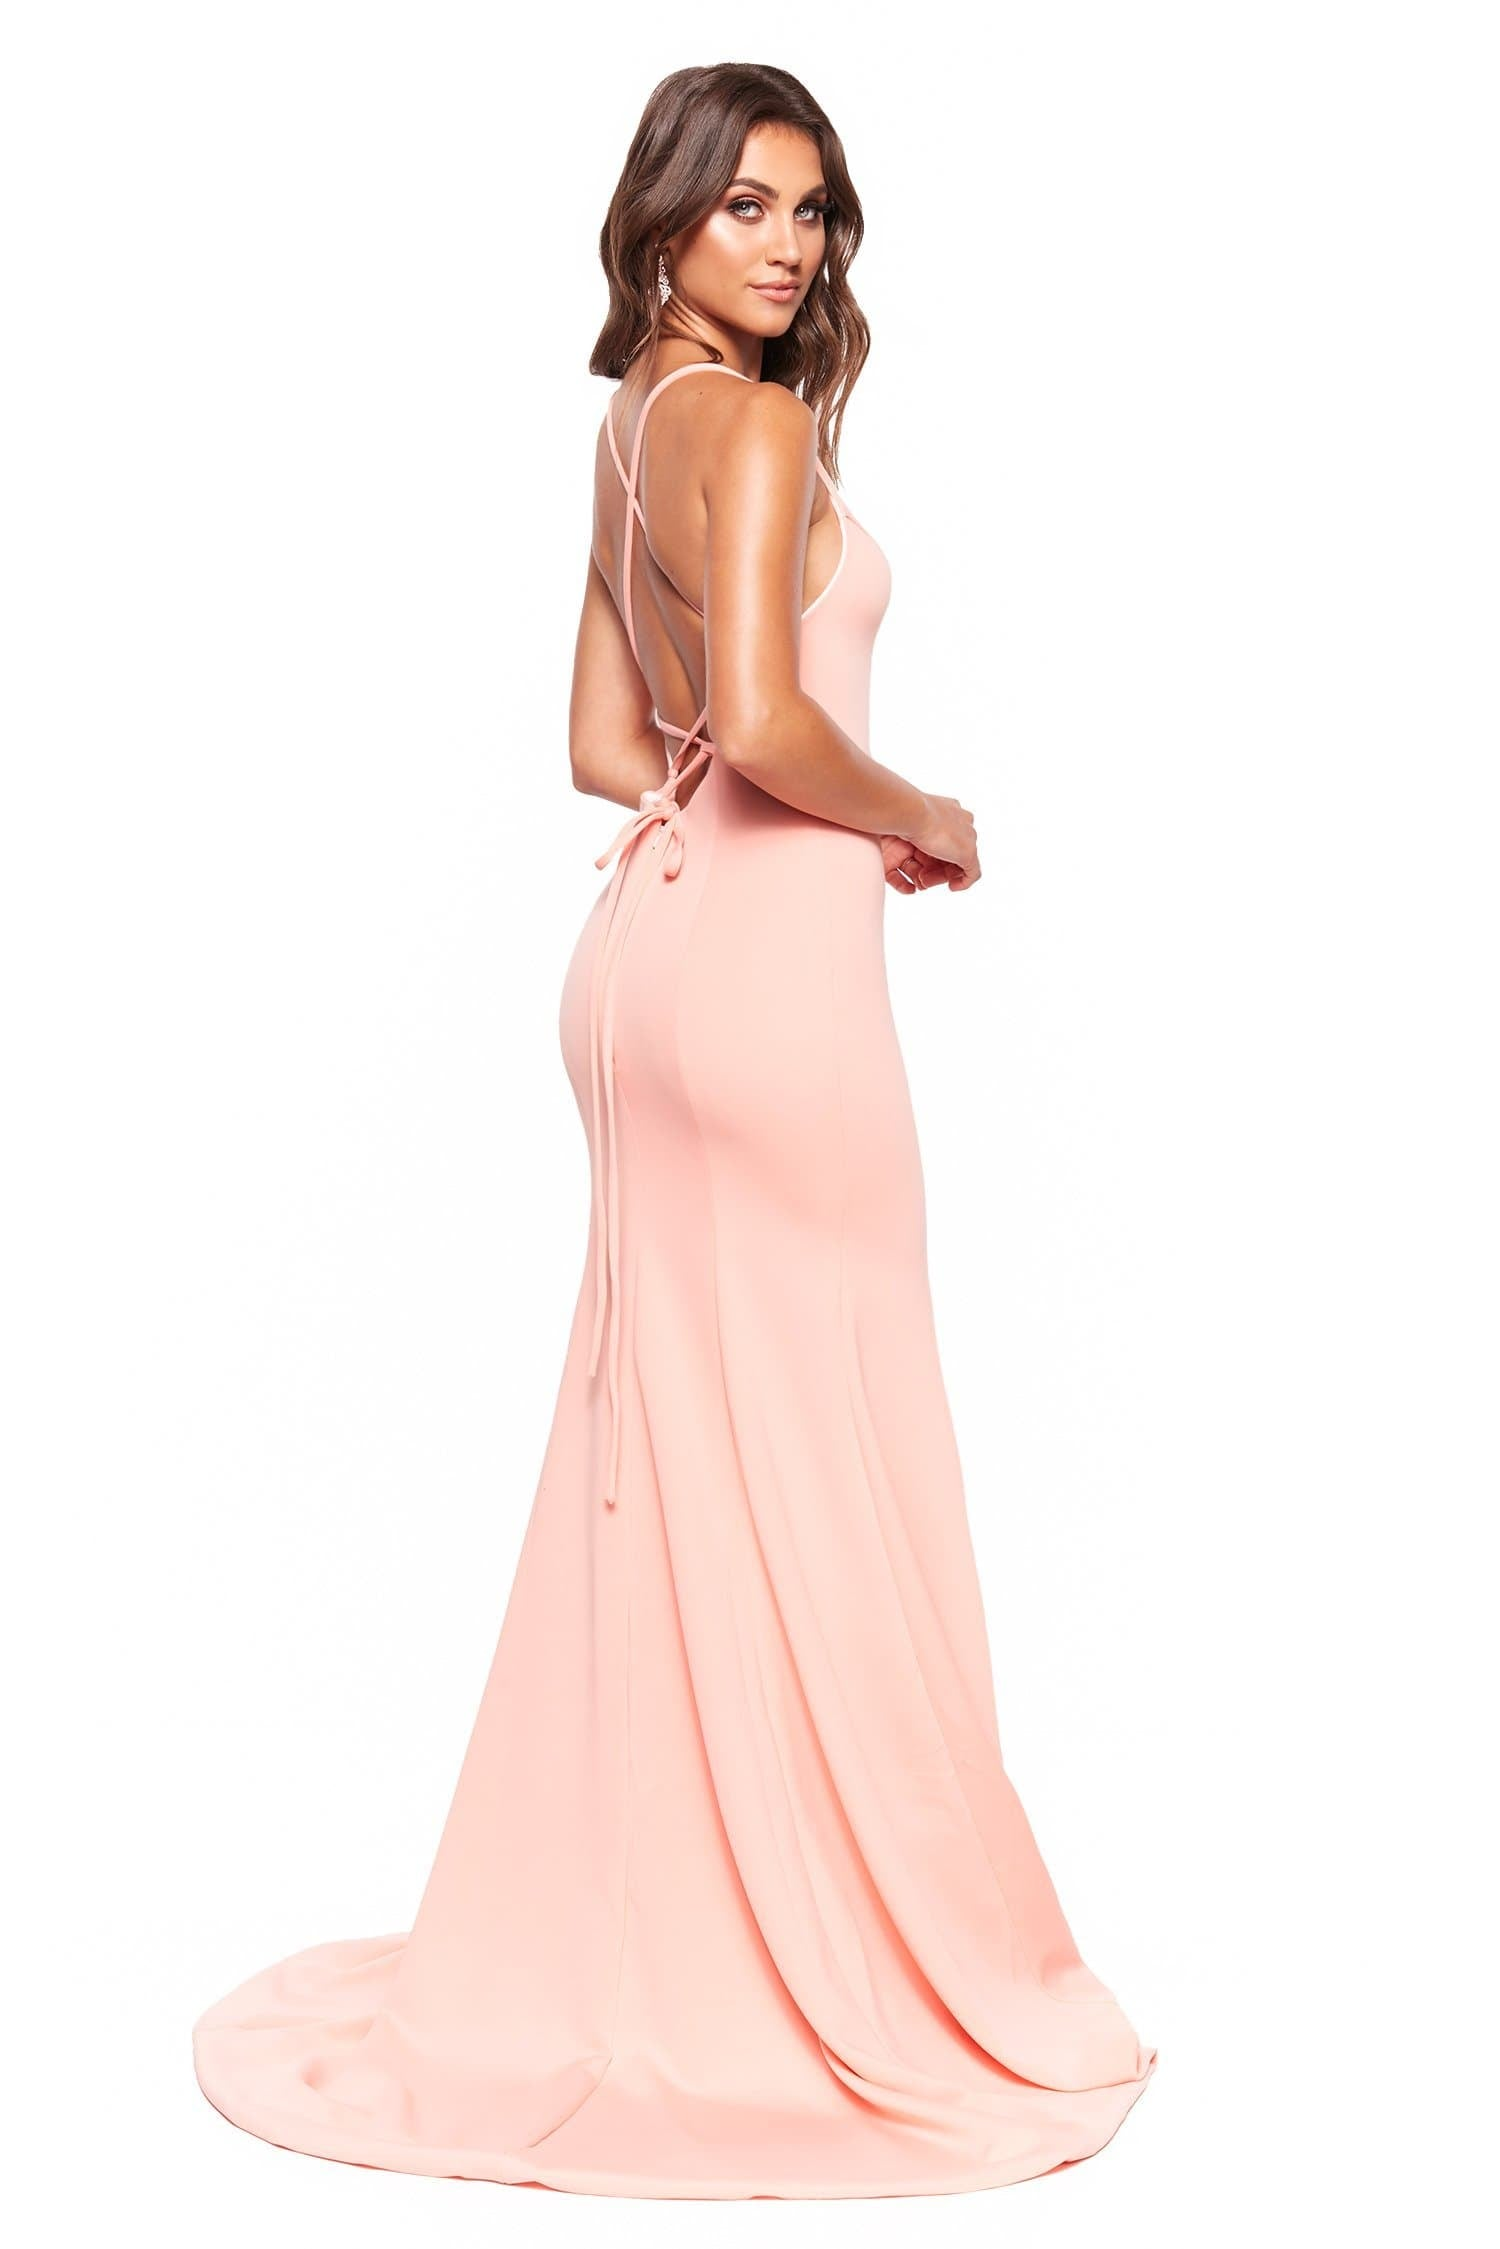 A&N Luxe Emilie - Peach Gown with V-Neck, Lace-Up Back & Side slit